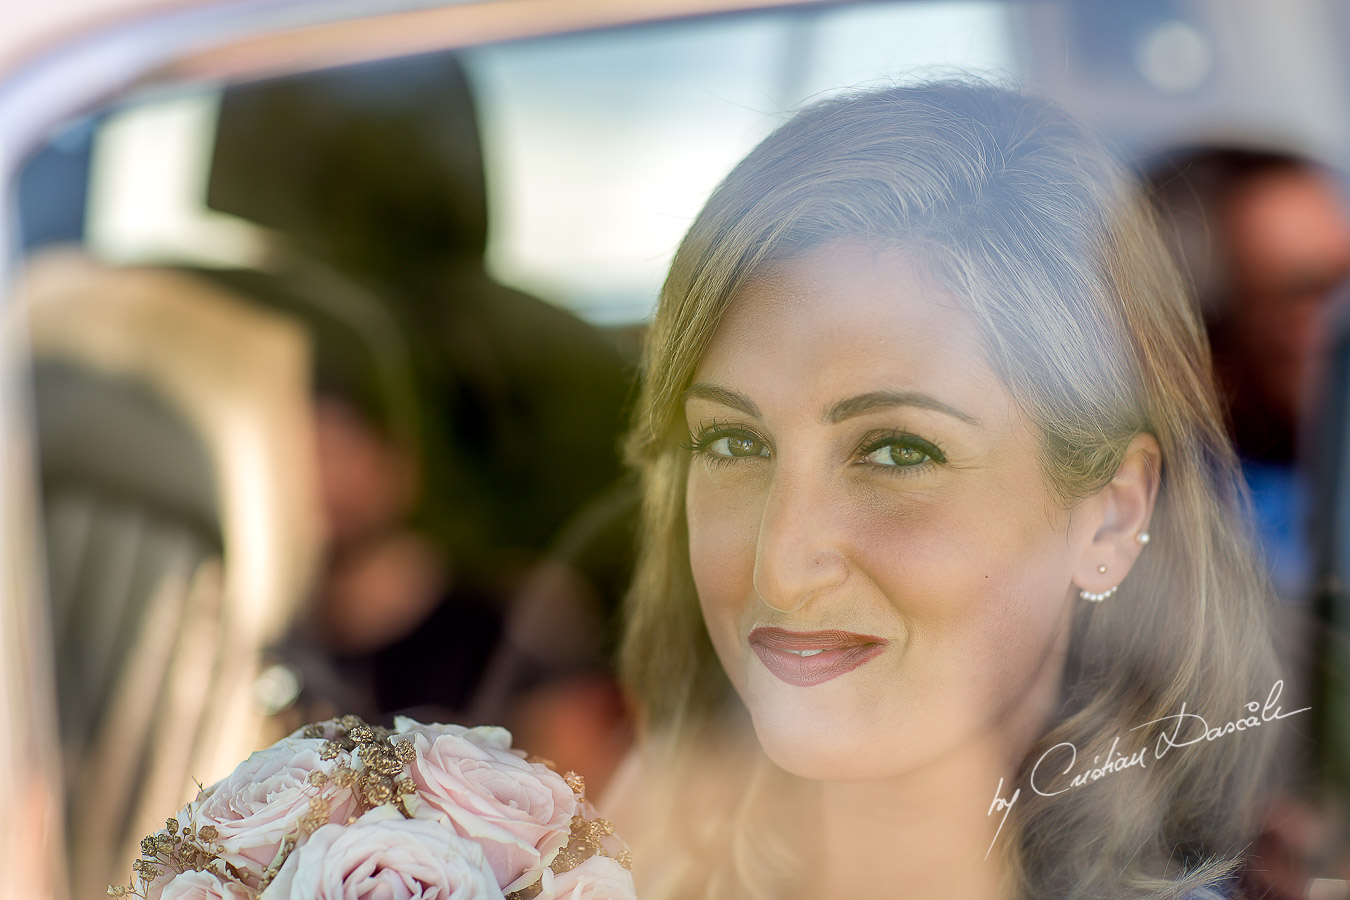 The sister of the bride arriving at the wedding Ceremony from Agia Paraskevi, in Paphos, Cyprus.